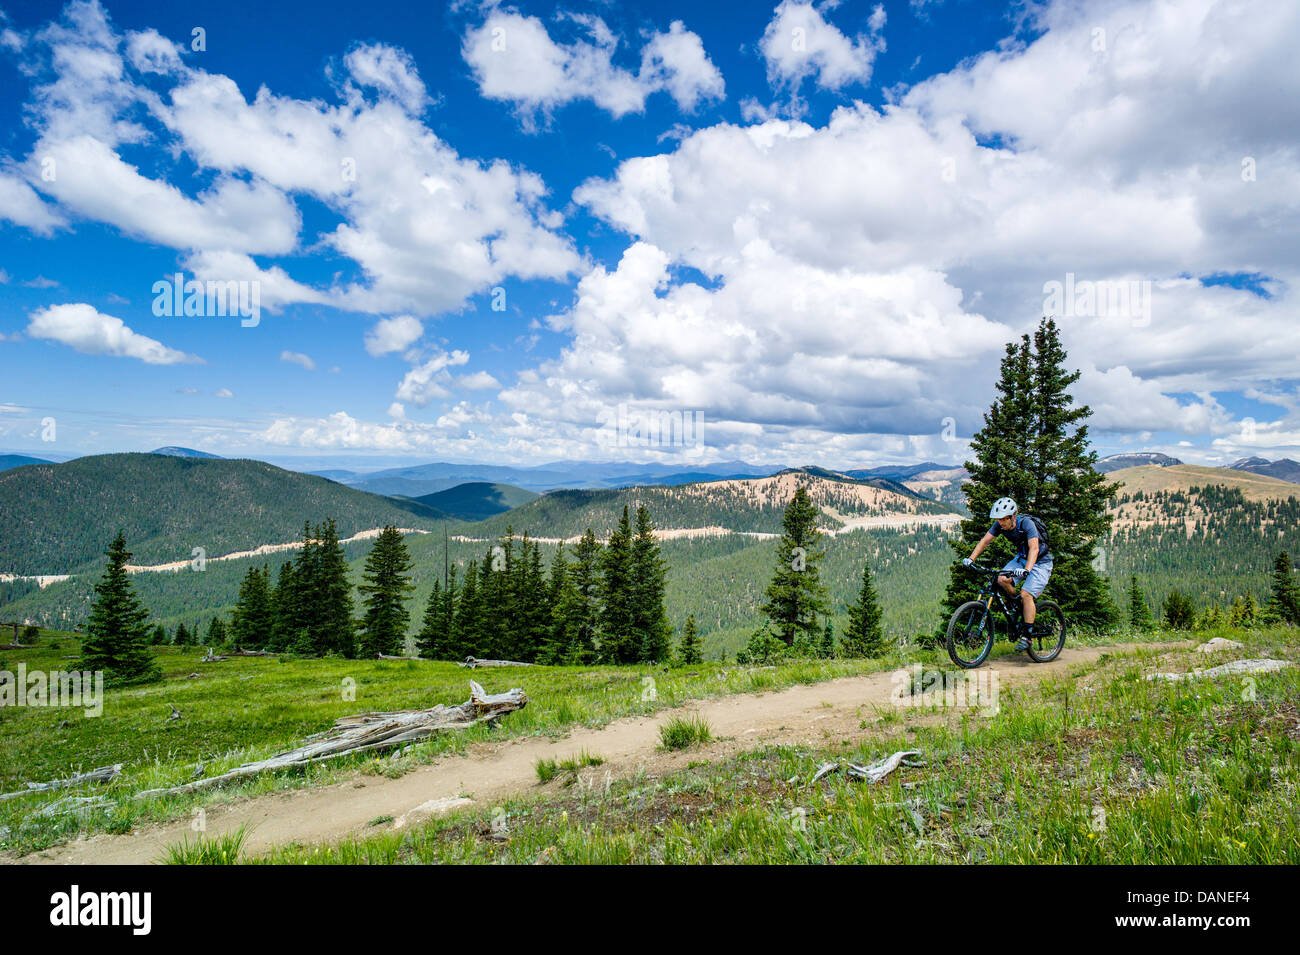 Mountain biker on the Monarch Crest Trail, Central Colorado, USA - Stock Image